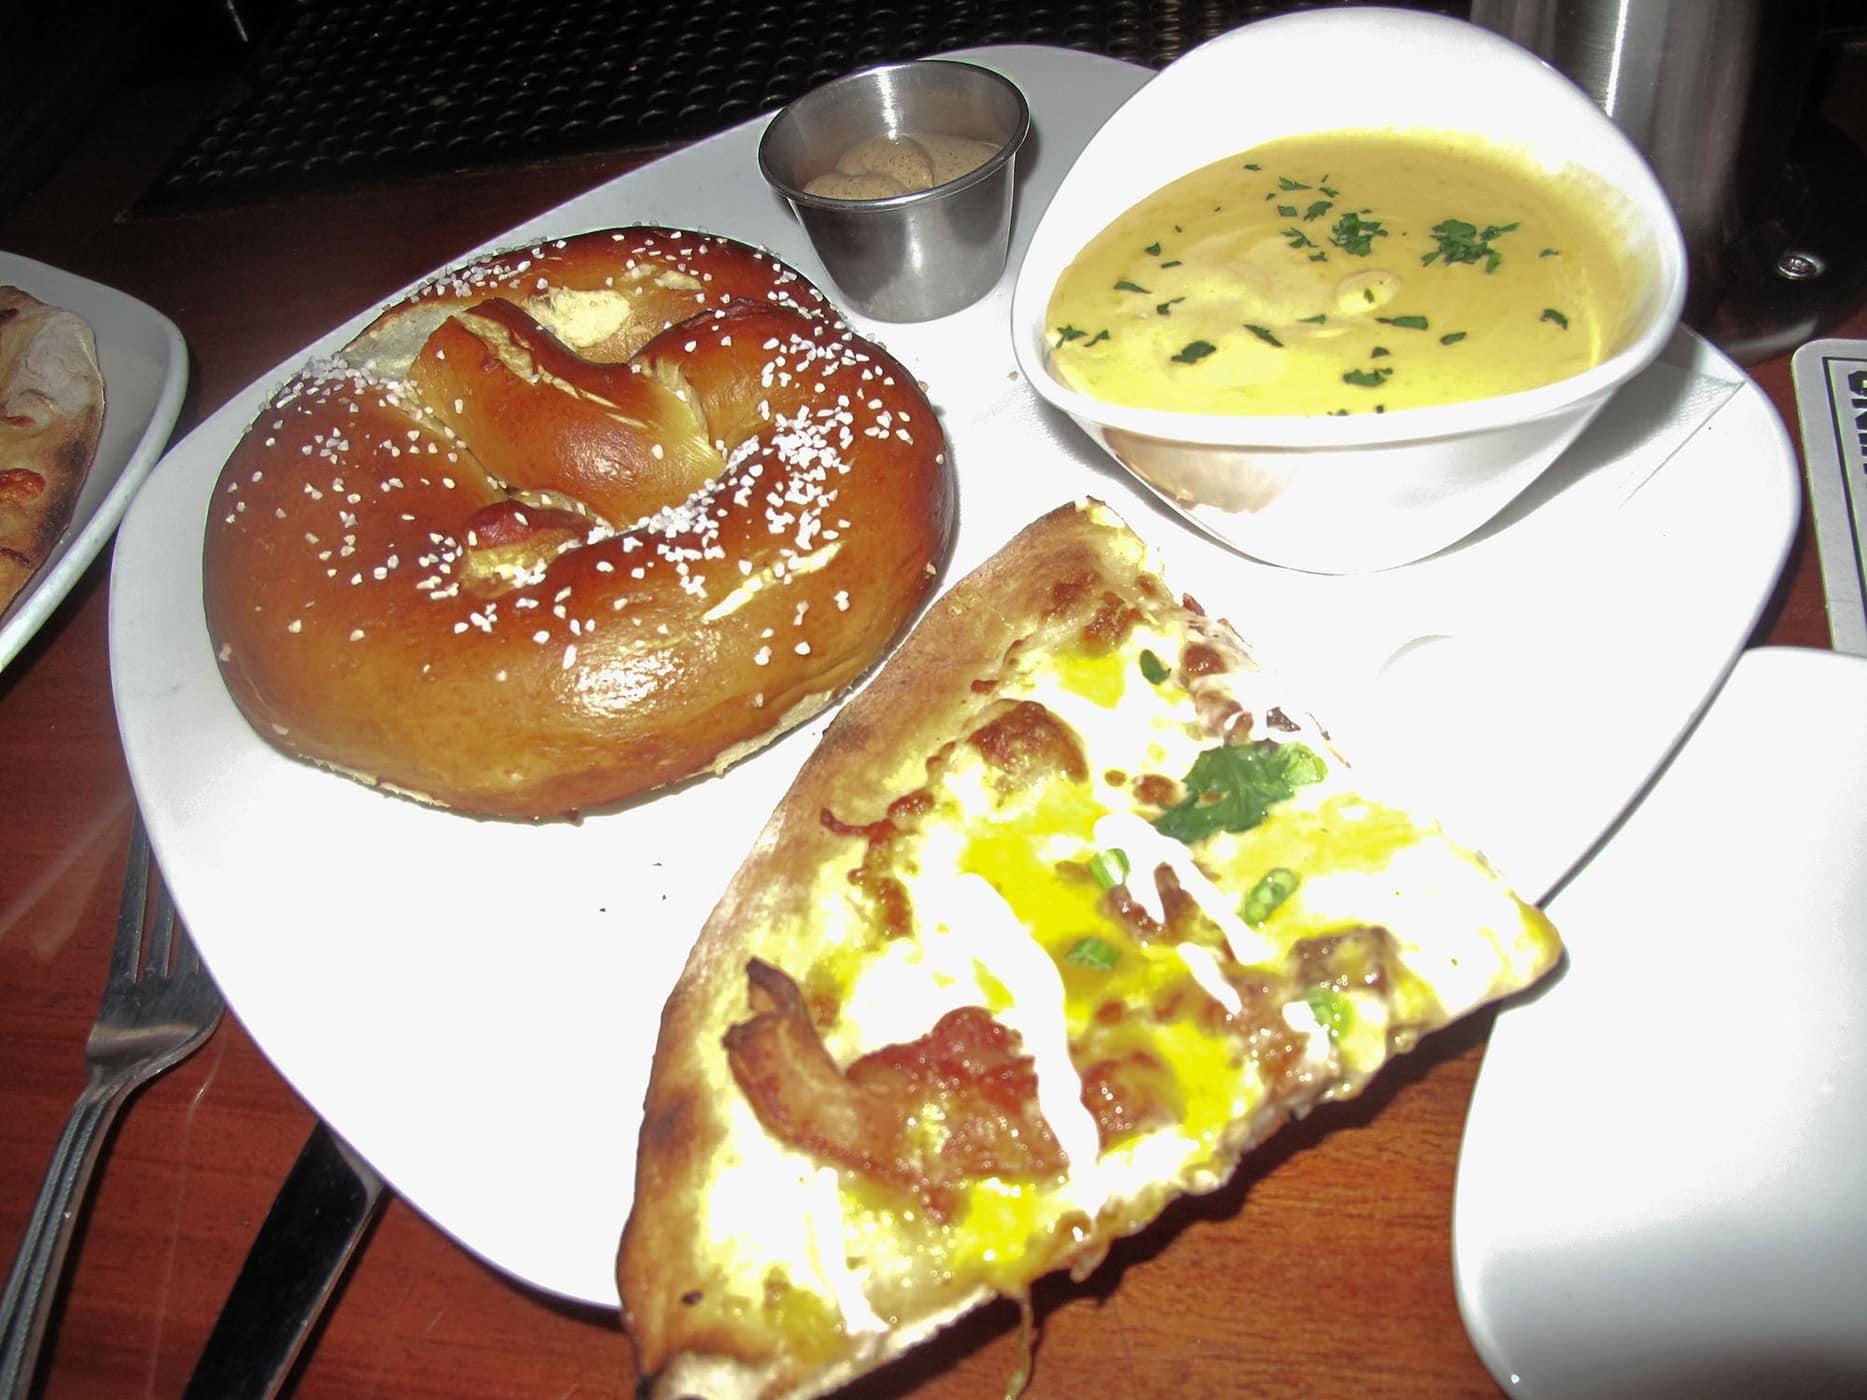 Twice baked potato pizza and a pretzel at Revolution Brewing in Chicago.